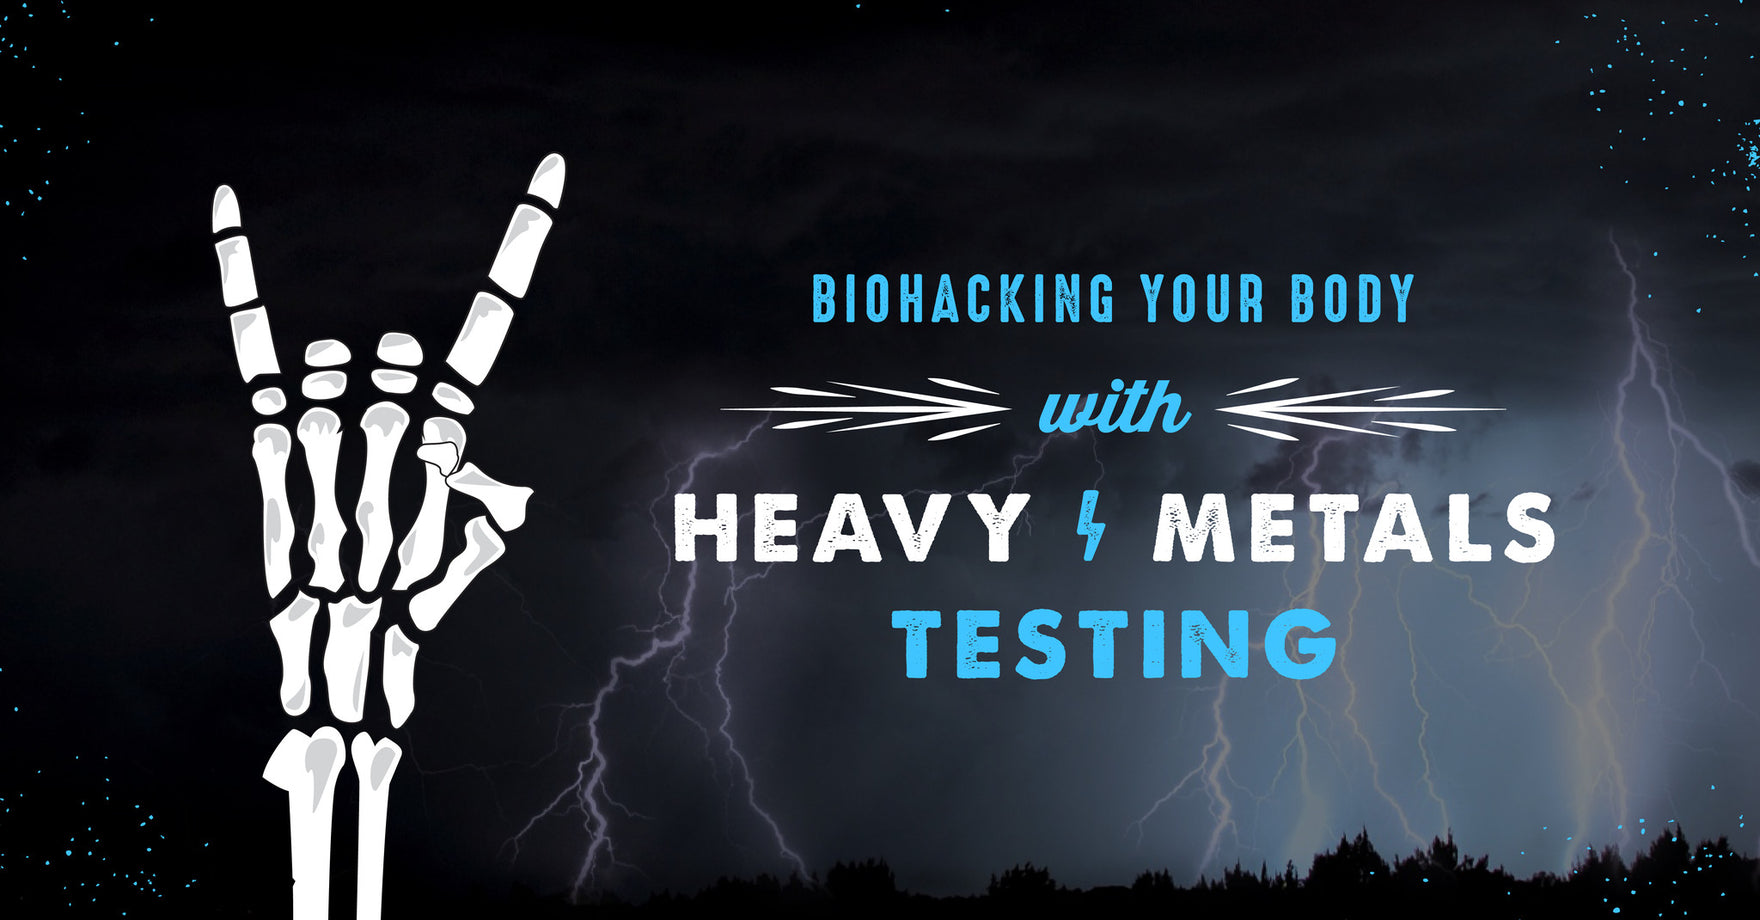 Biohacking Your Body With Heavy Metals Testing